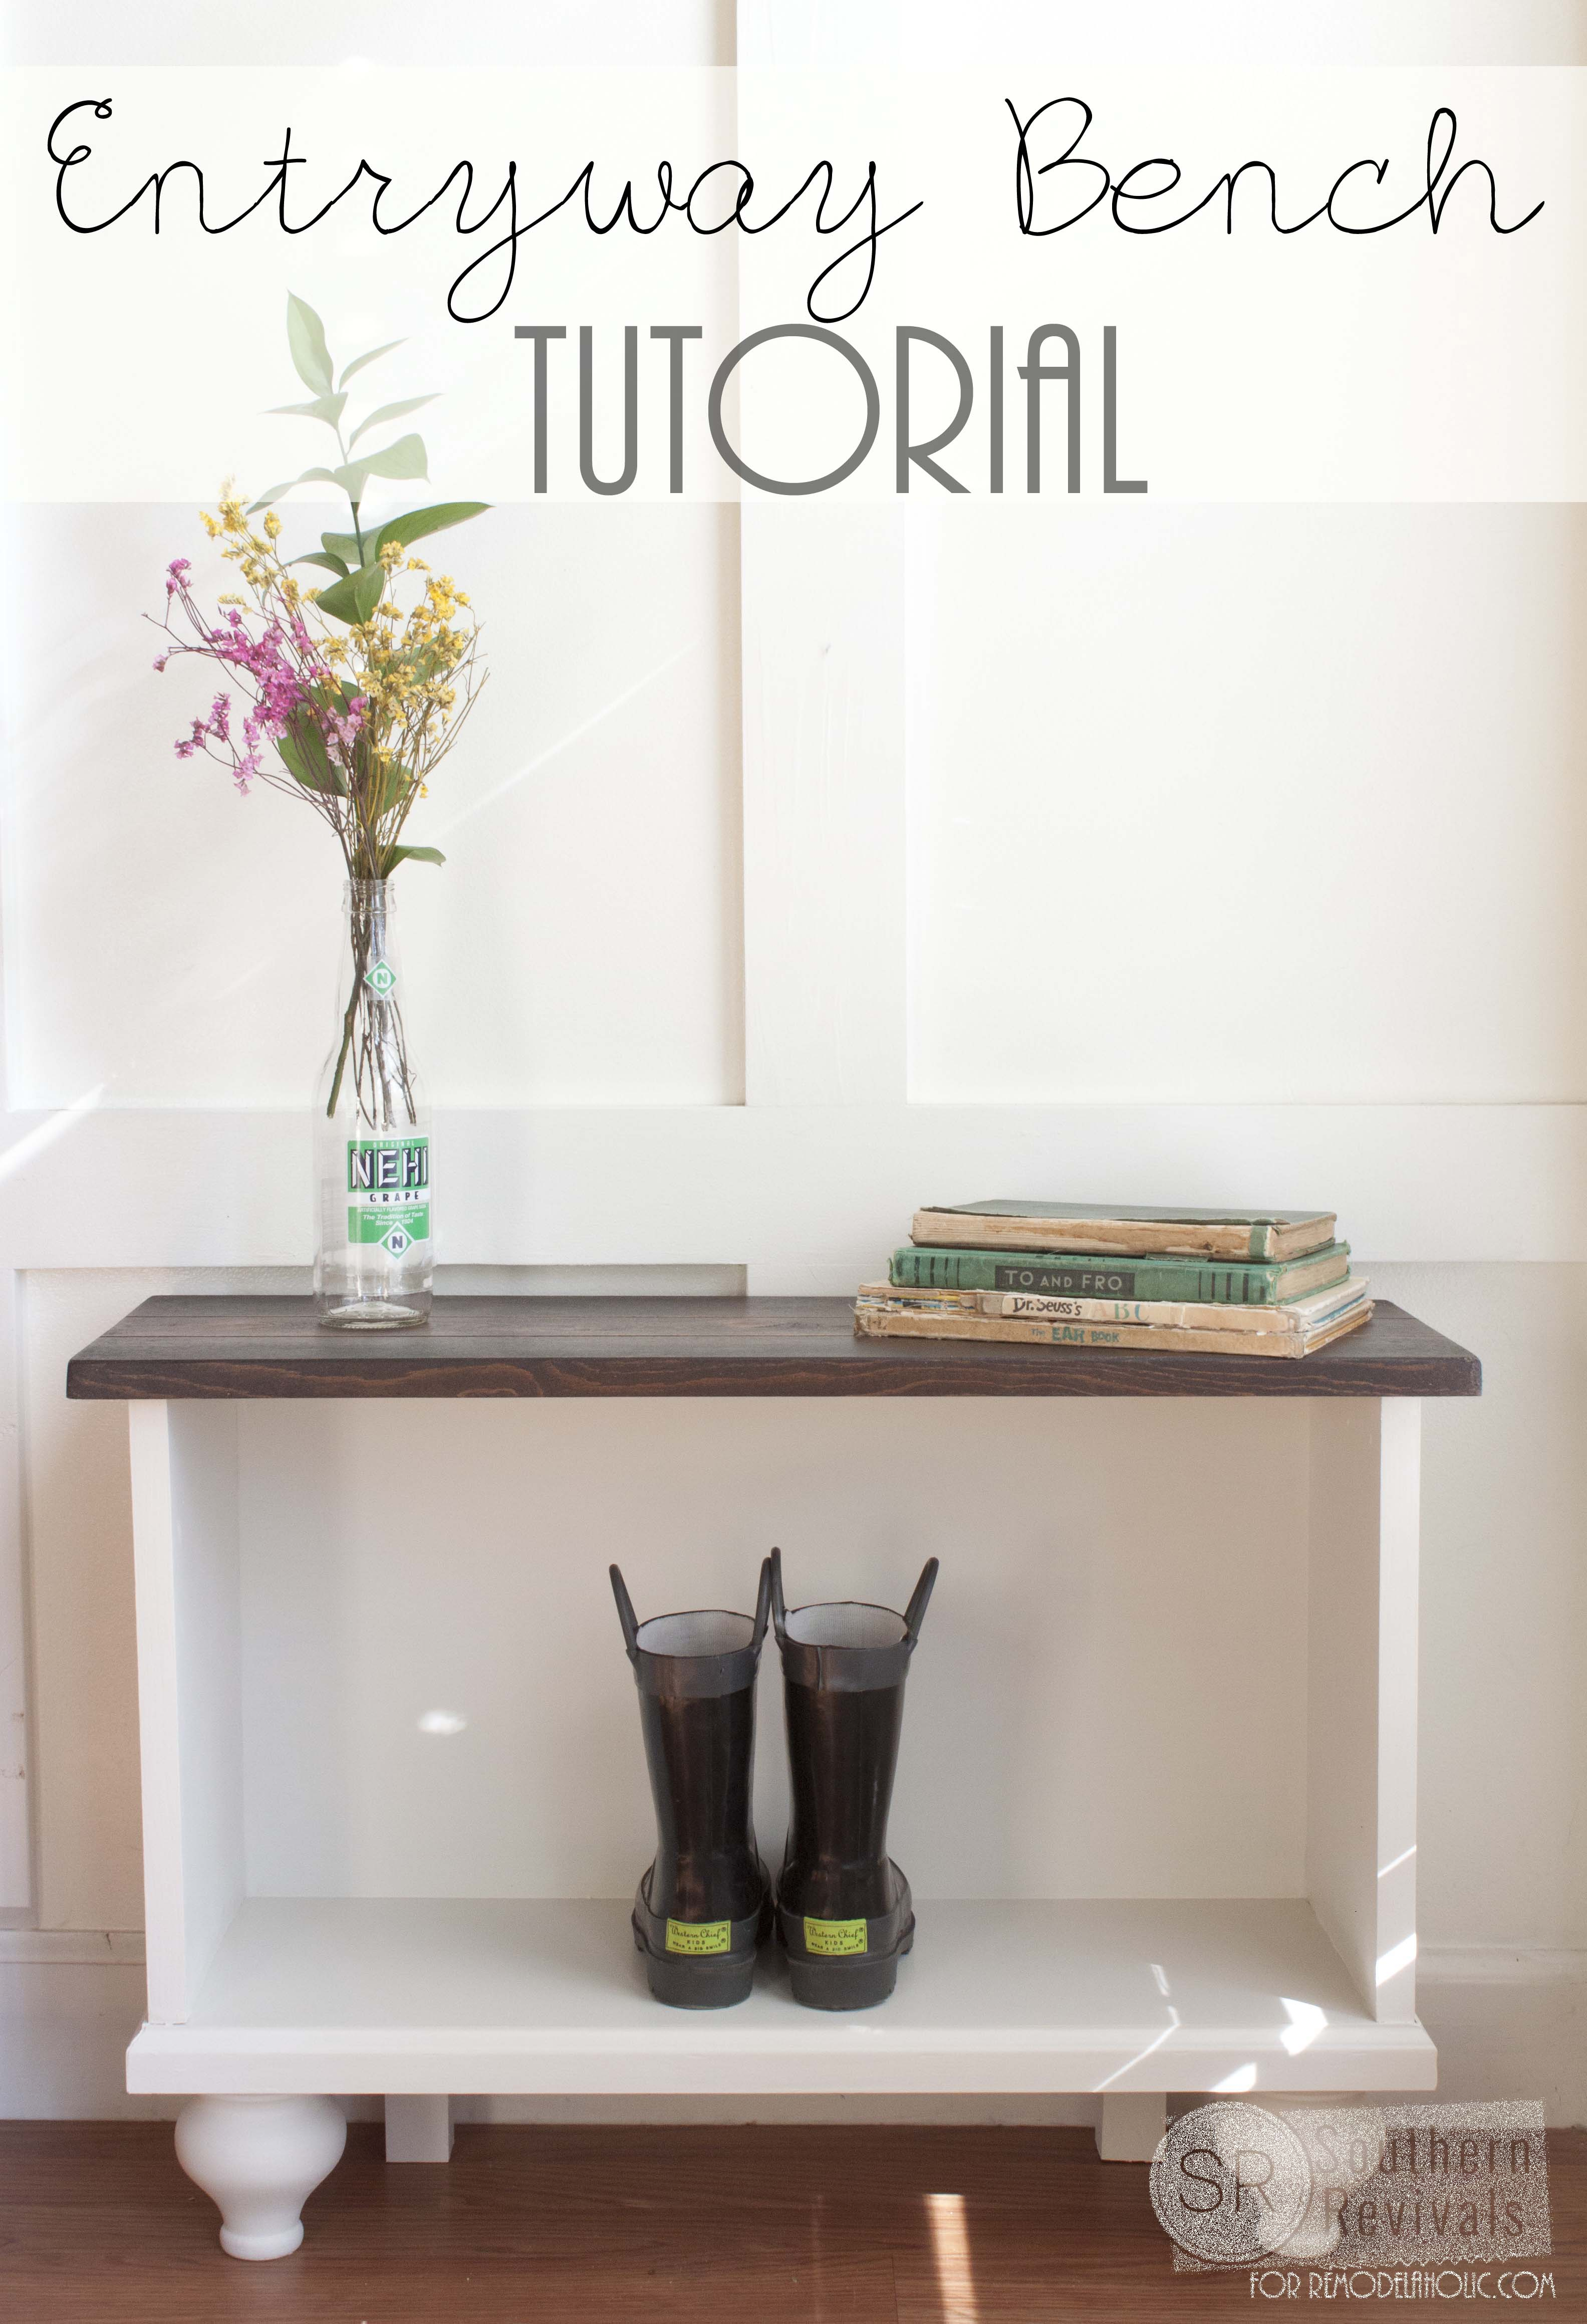 Build This Easy Entryway Bench With Storage! Free Building Plans On  Remodelaholic.com #